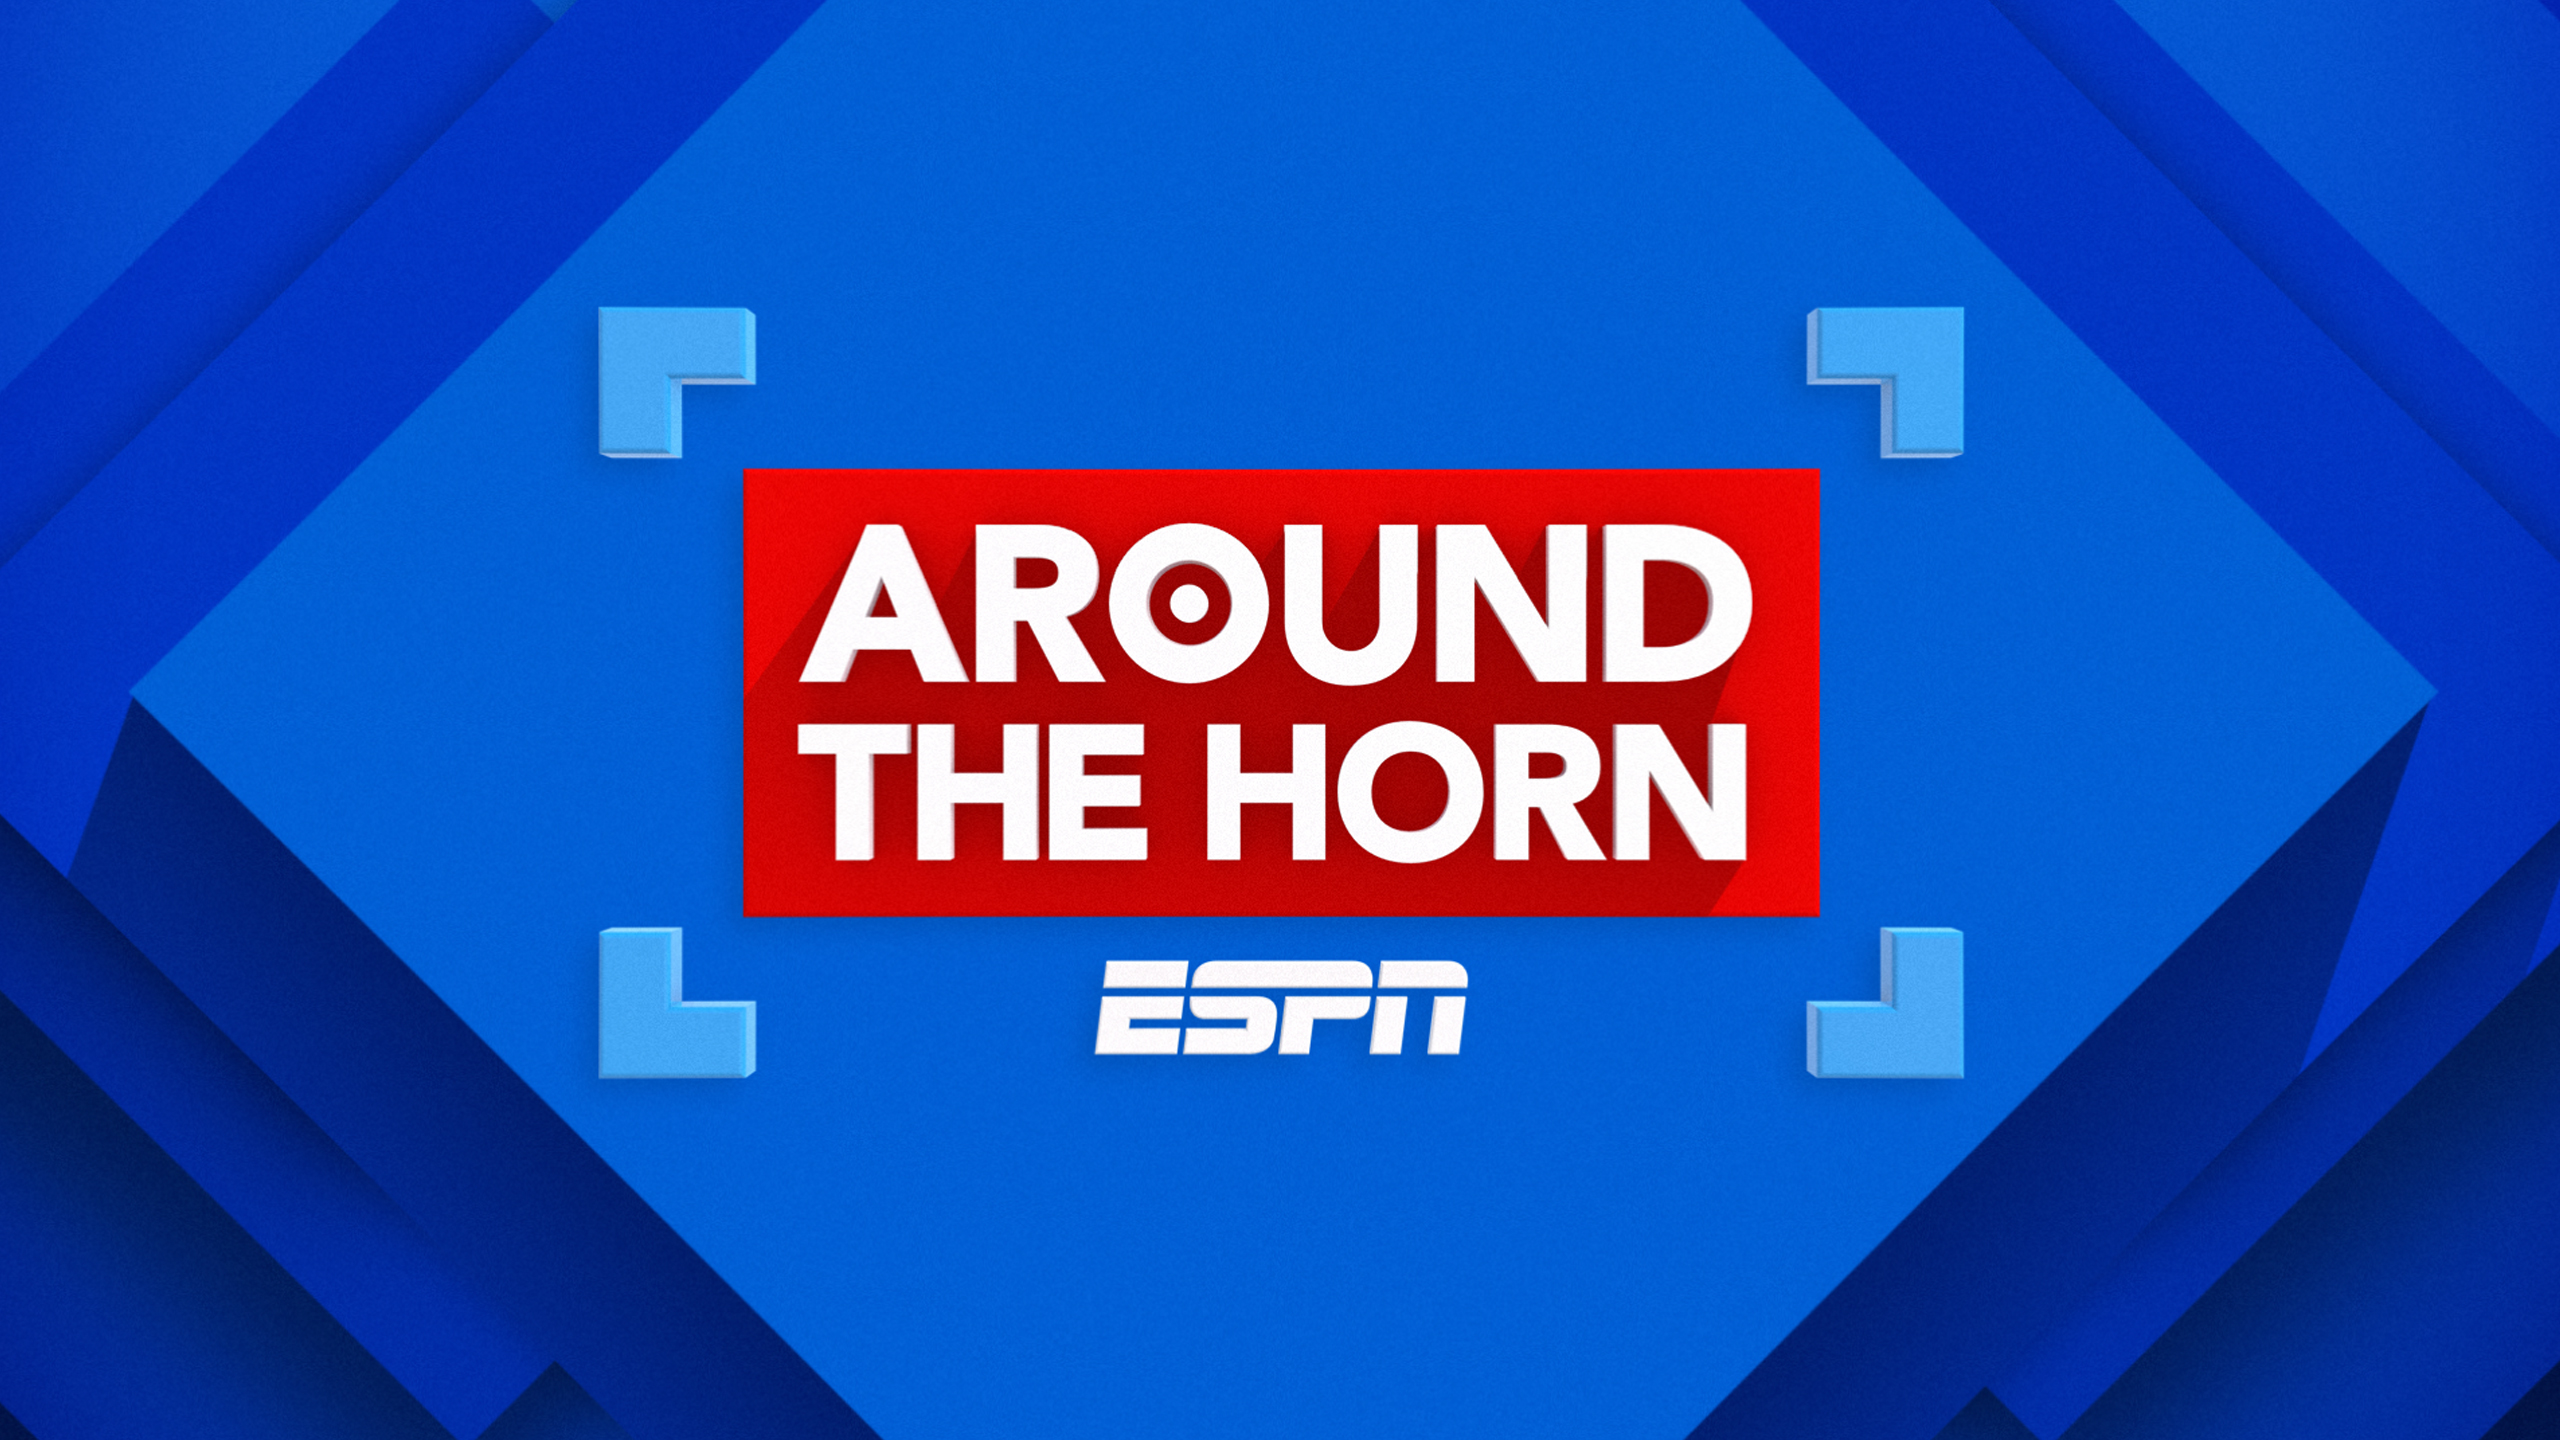 Mon, 11/12 - Around The Horn